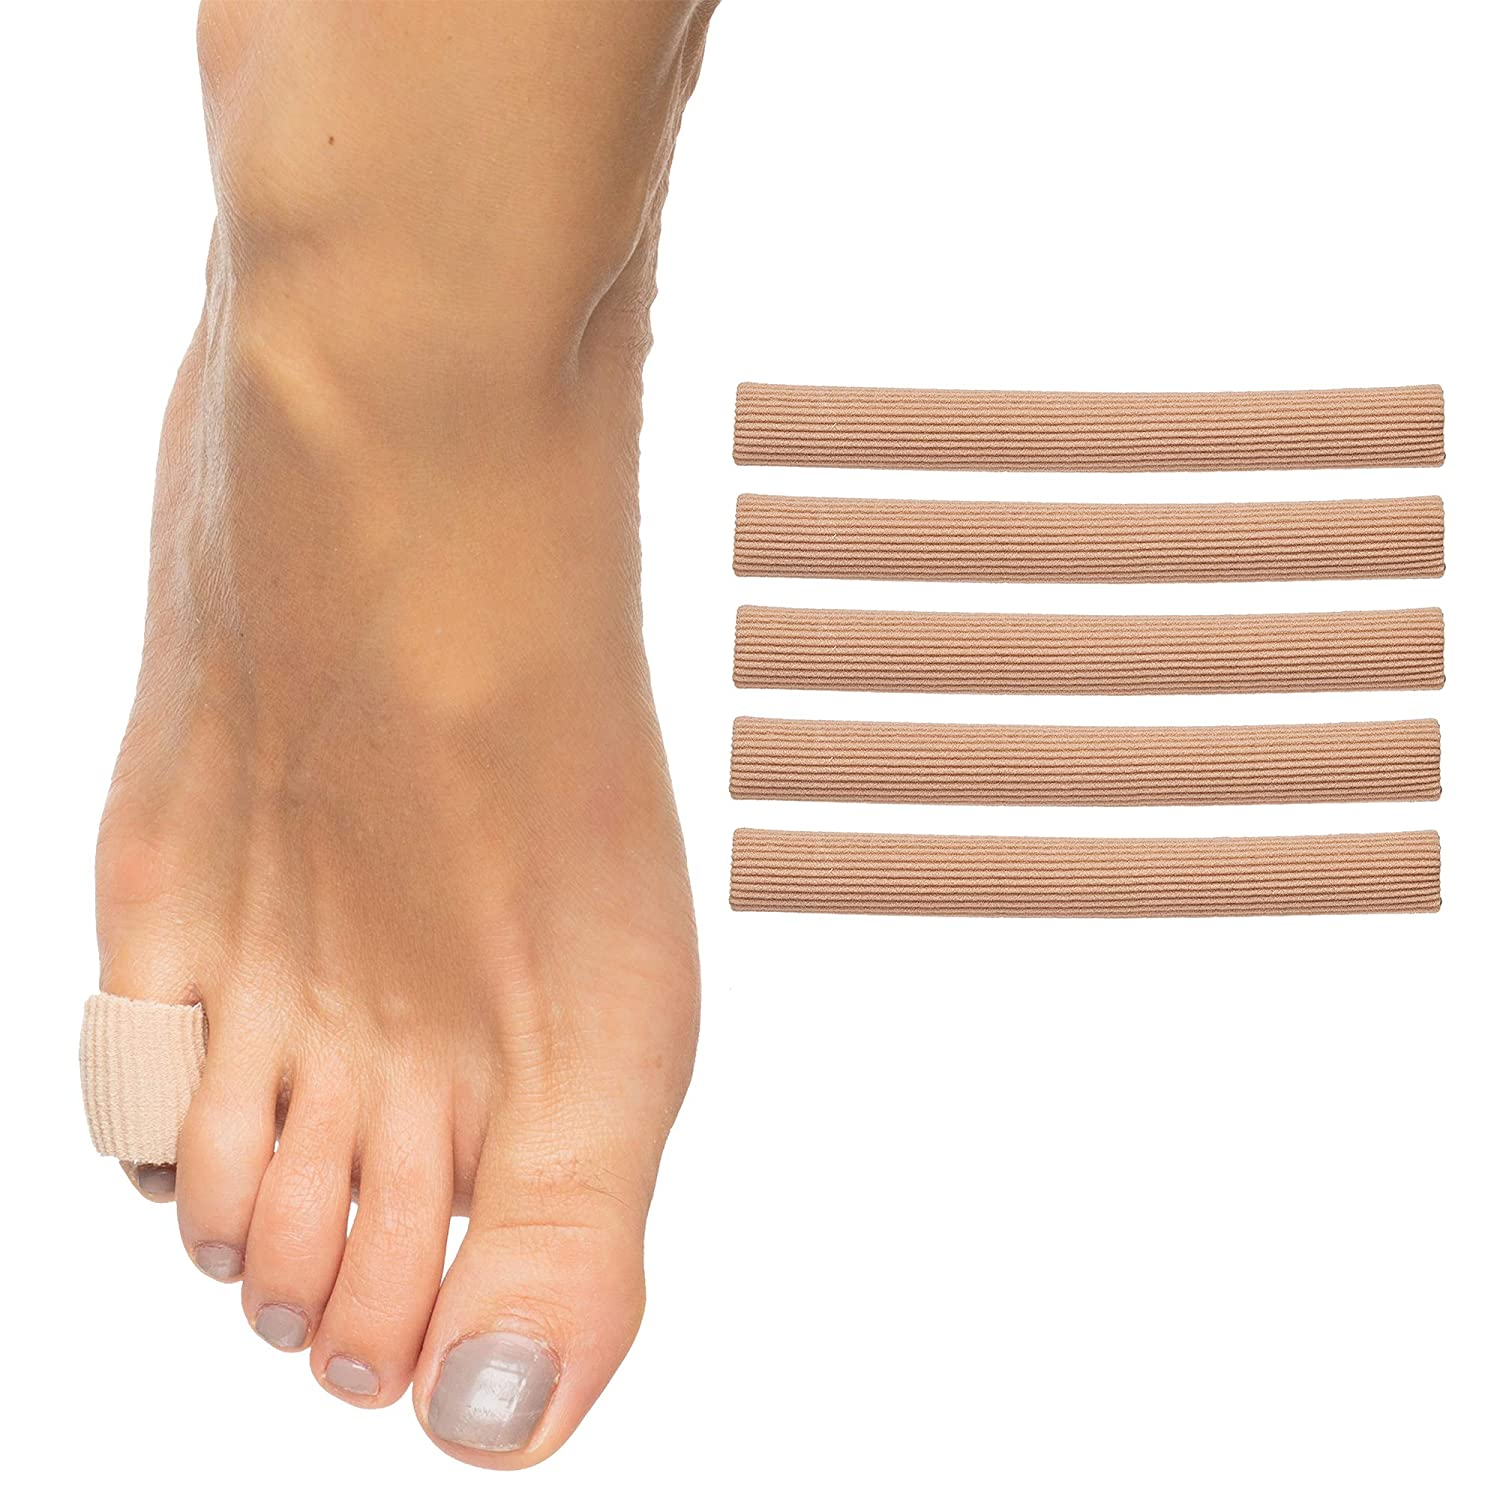 """ZenToes Open Toe Tubes Fabric Gel Lined Sleeve Protectors for Corns, Blisters, Hammertoes - 5 Pack - 29"""" of Tubing"""